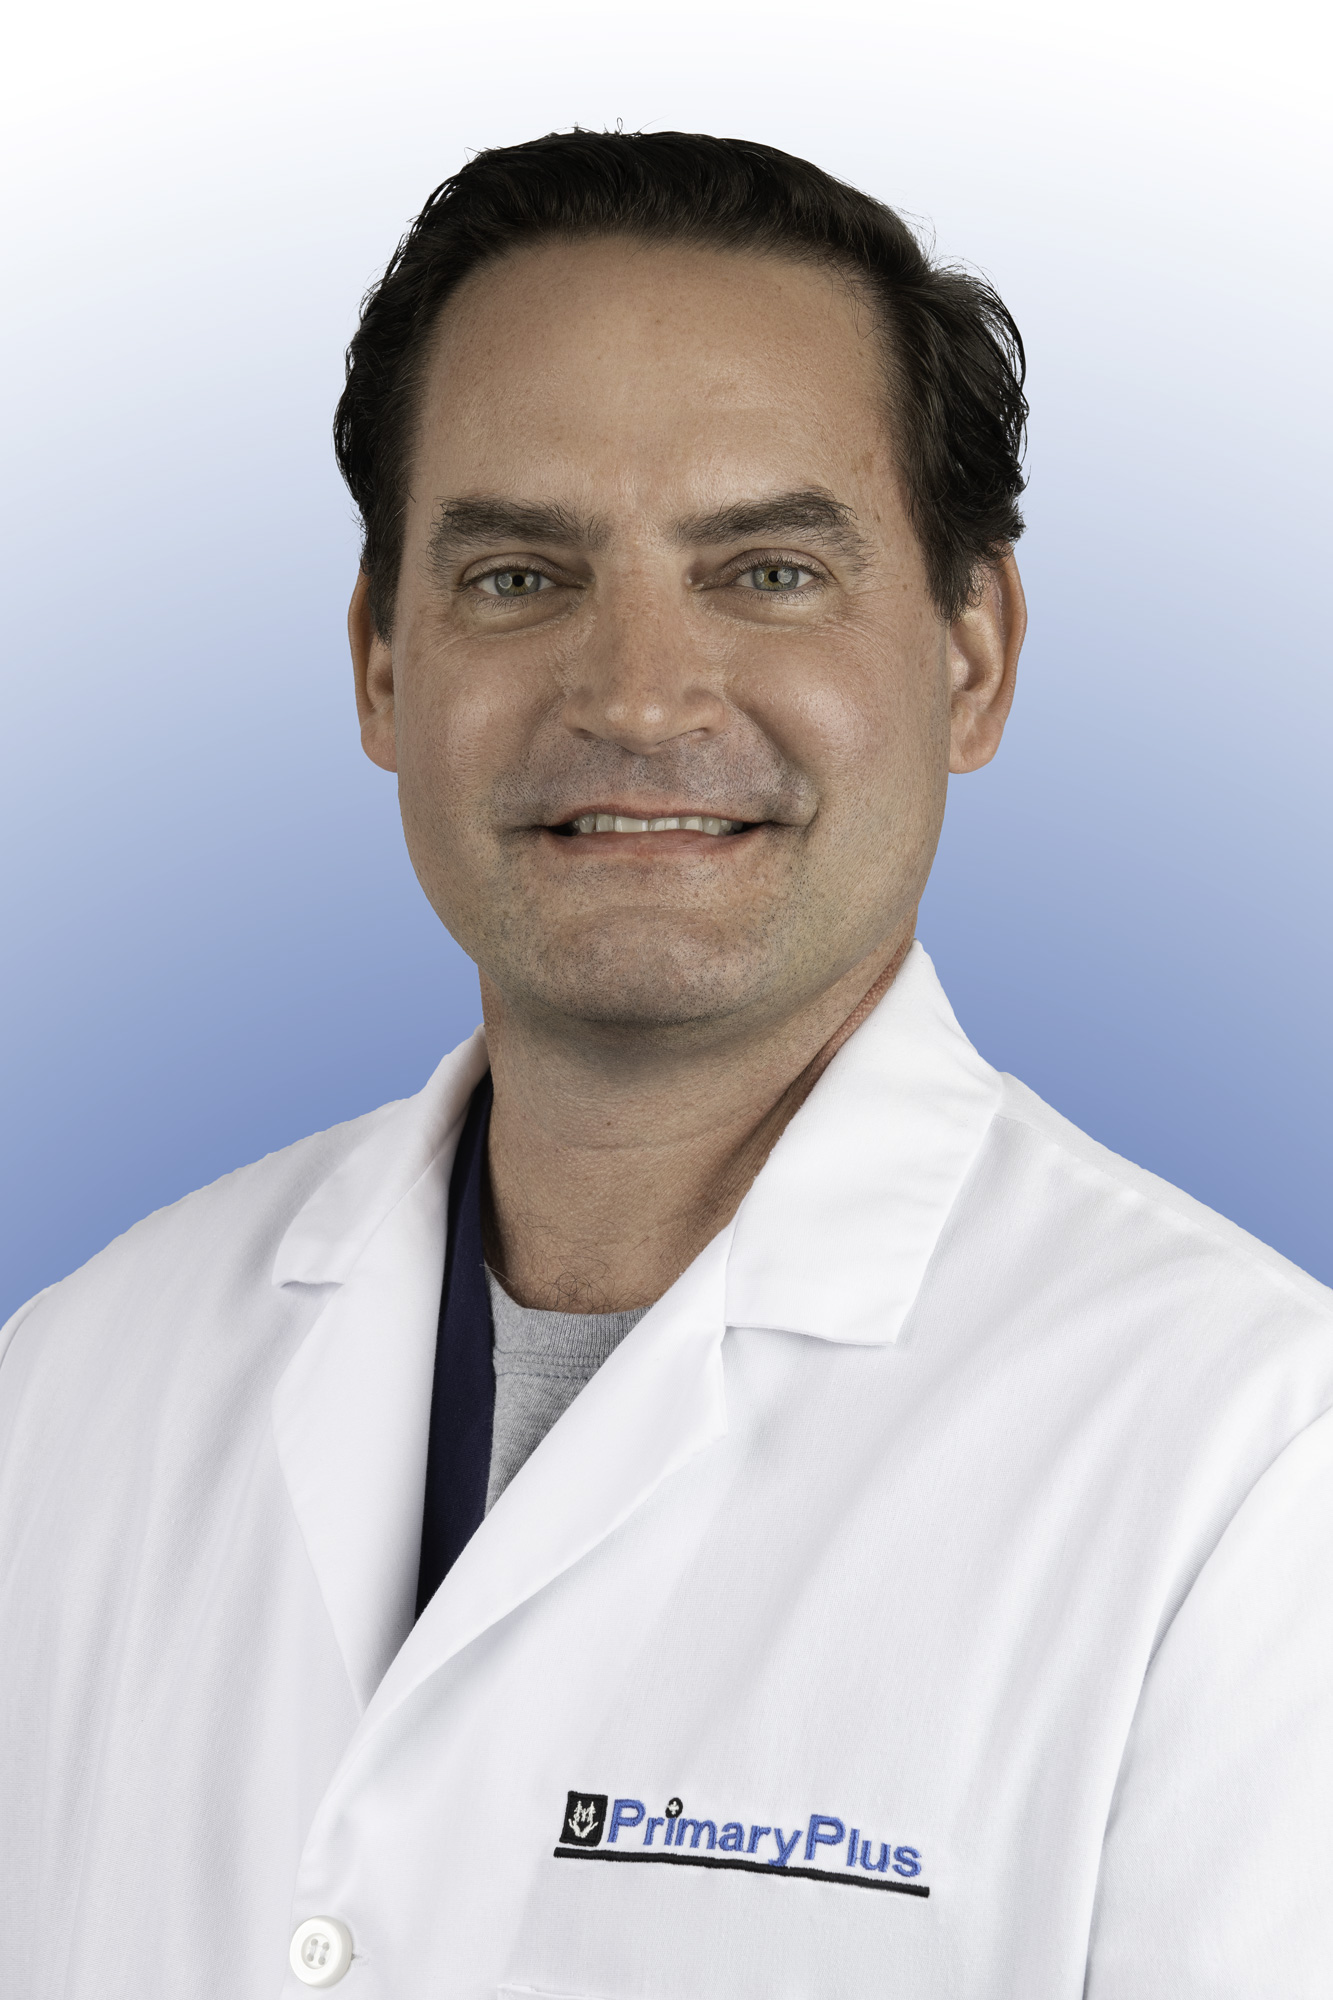 Welcoming Dr. Michael Socher to PrimaryPlus-OB/GYN News